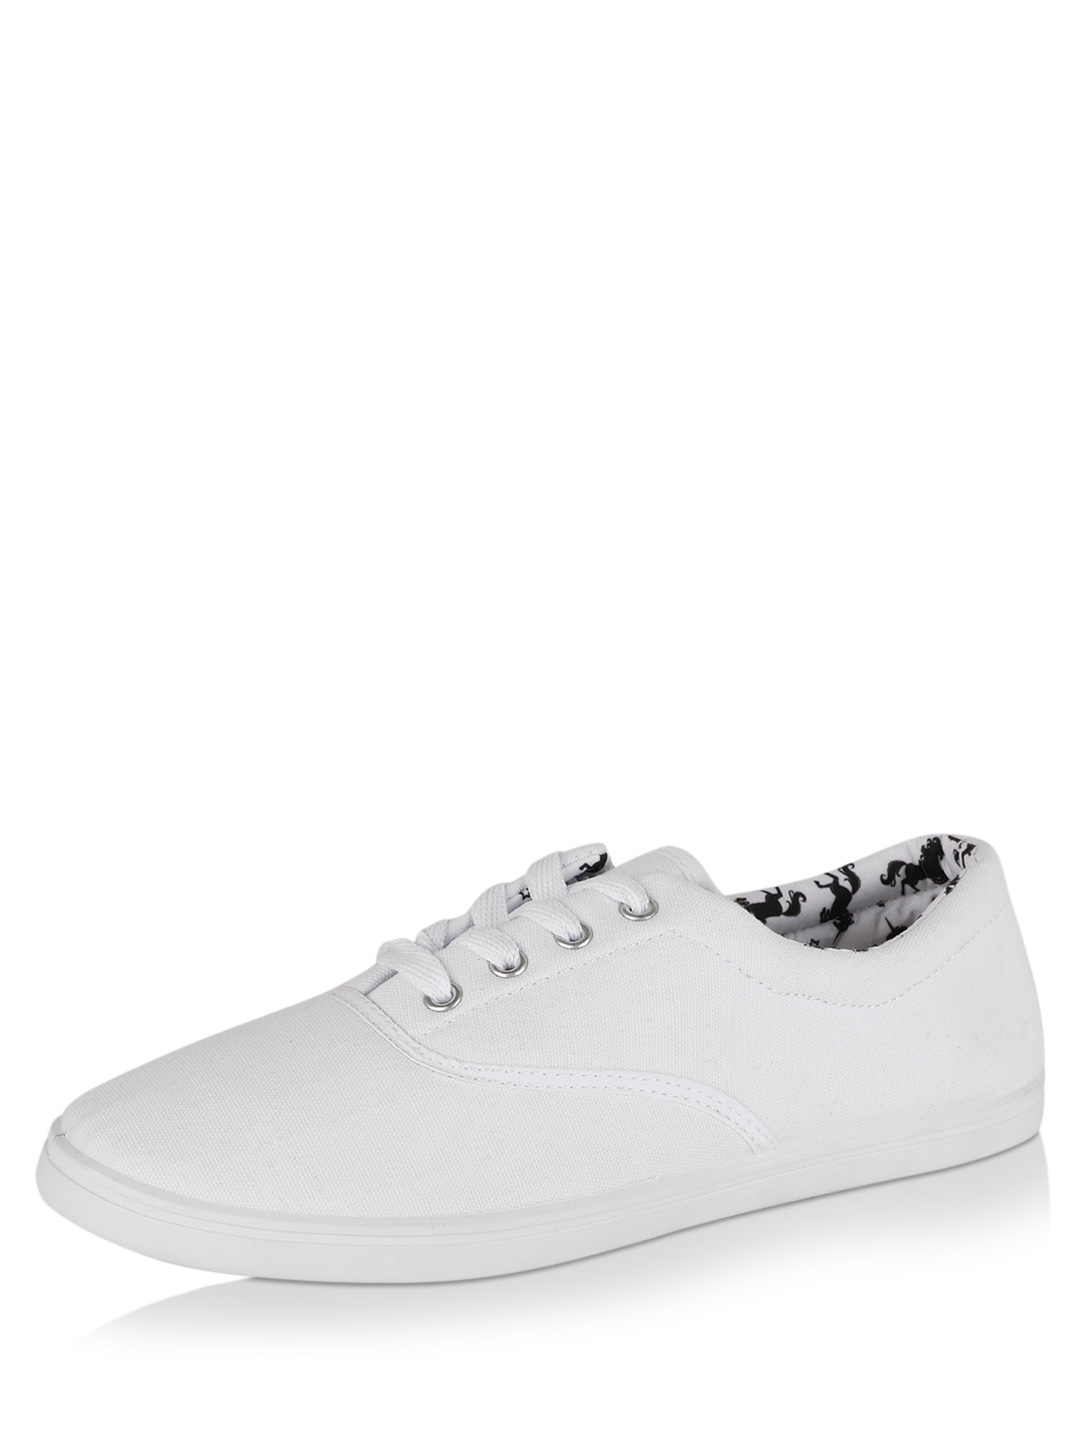 New Look White Lace-up Soft Tennis Sneakers 1